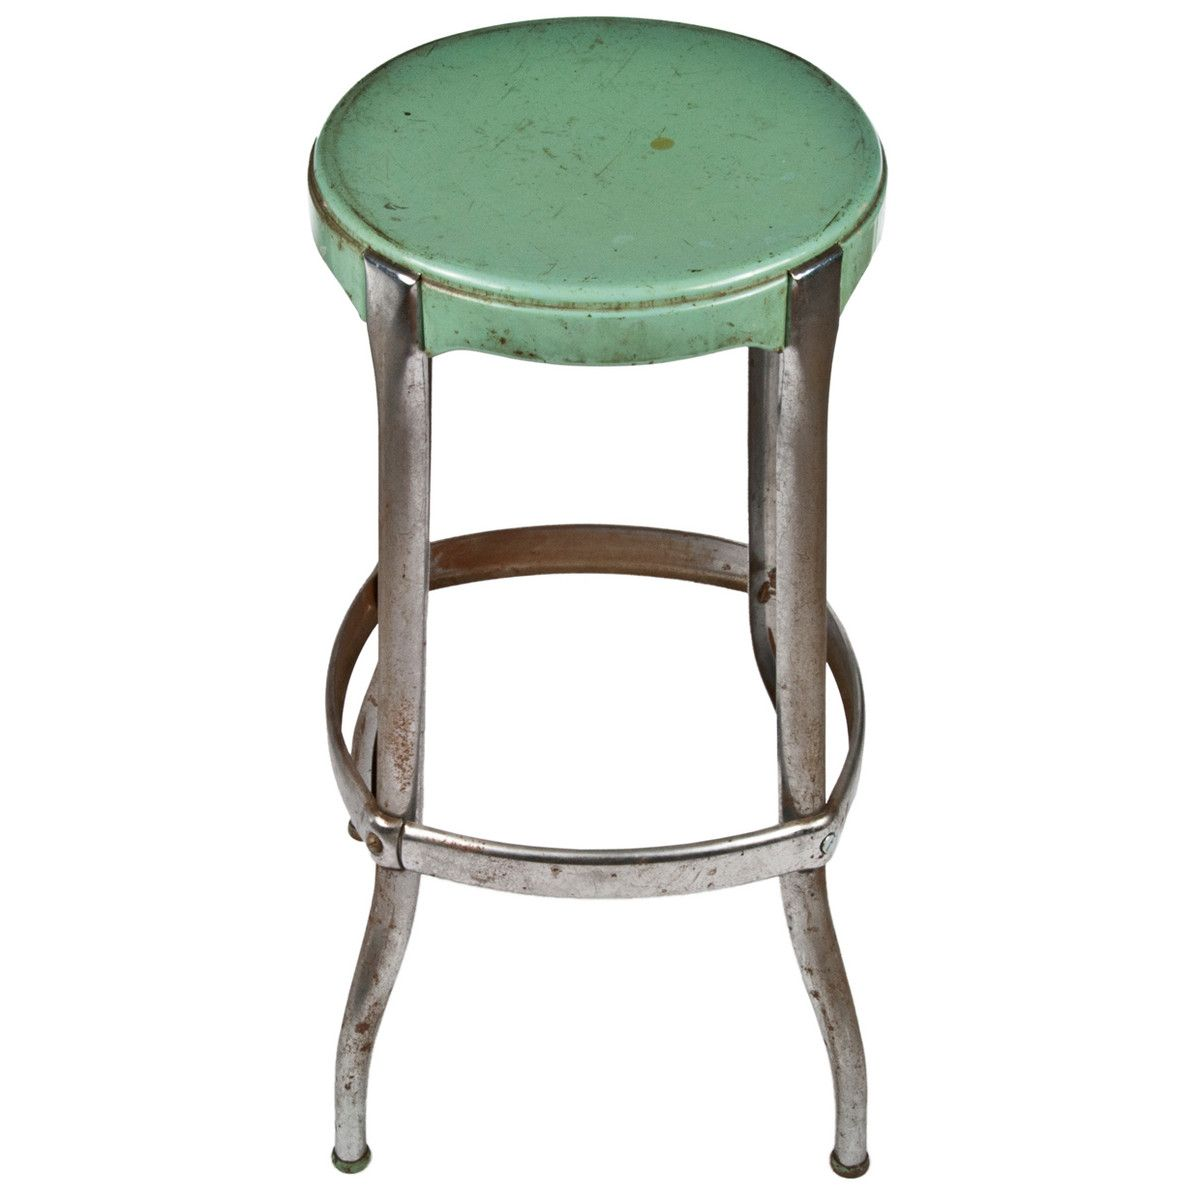 Cosco Chippy Red Metal Kitchen Cart Movable Painted Vintage: Cosco Steel Kitchen Stool